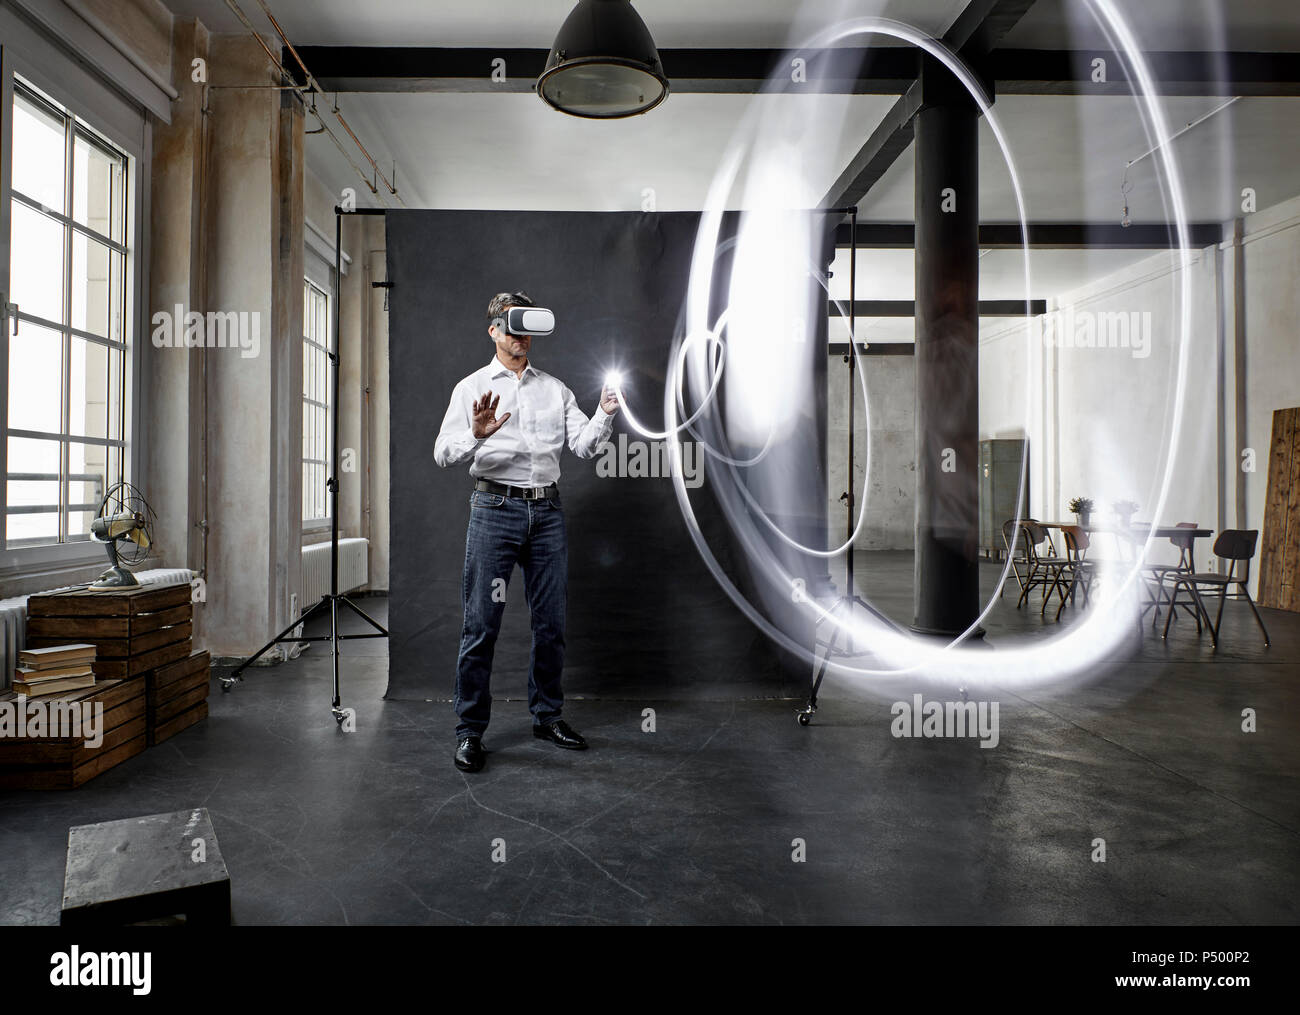 Mature man with vr glasses light painting in front of black backdrop in loft - Stock Image